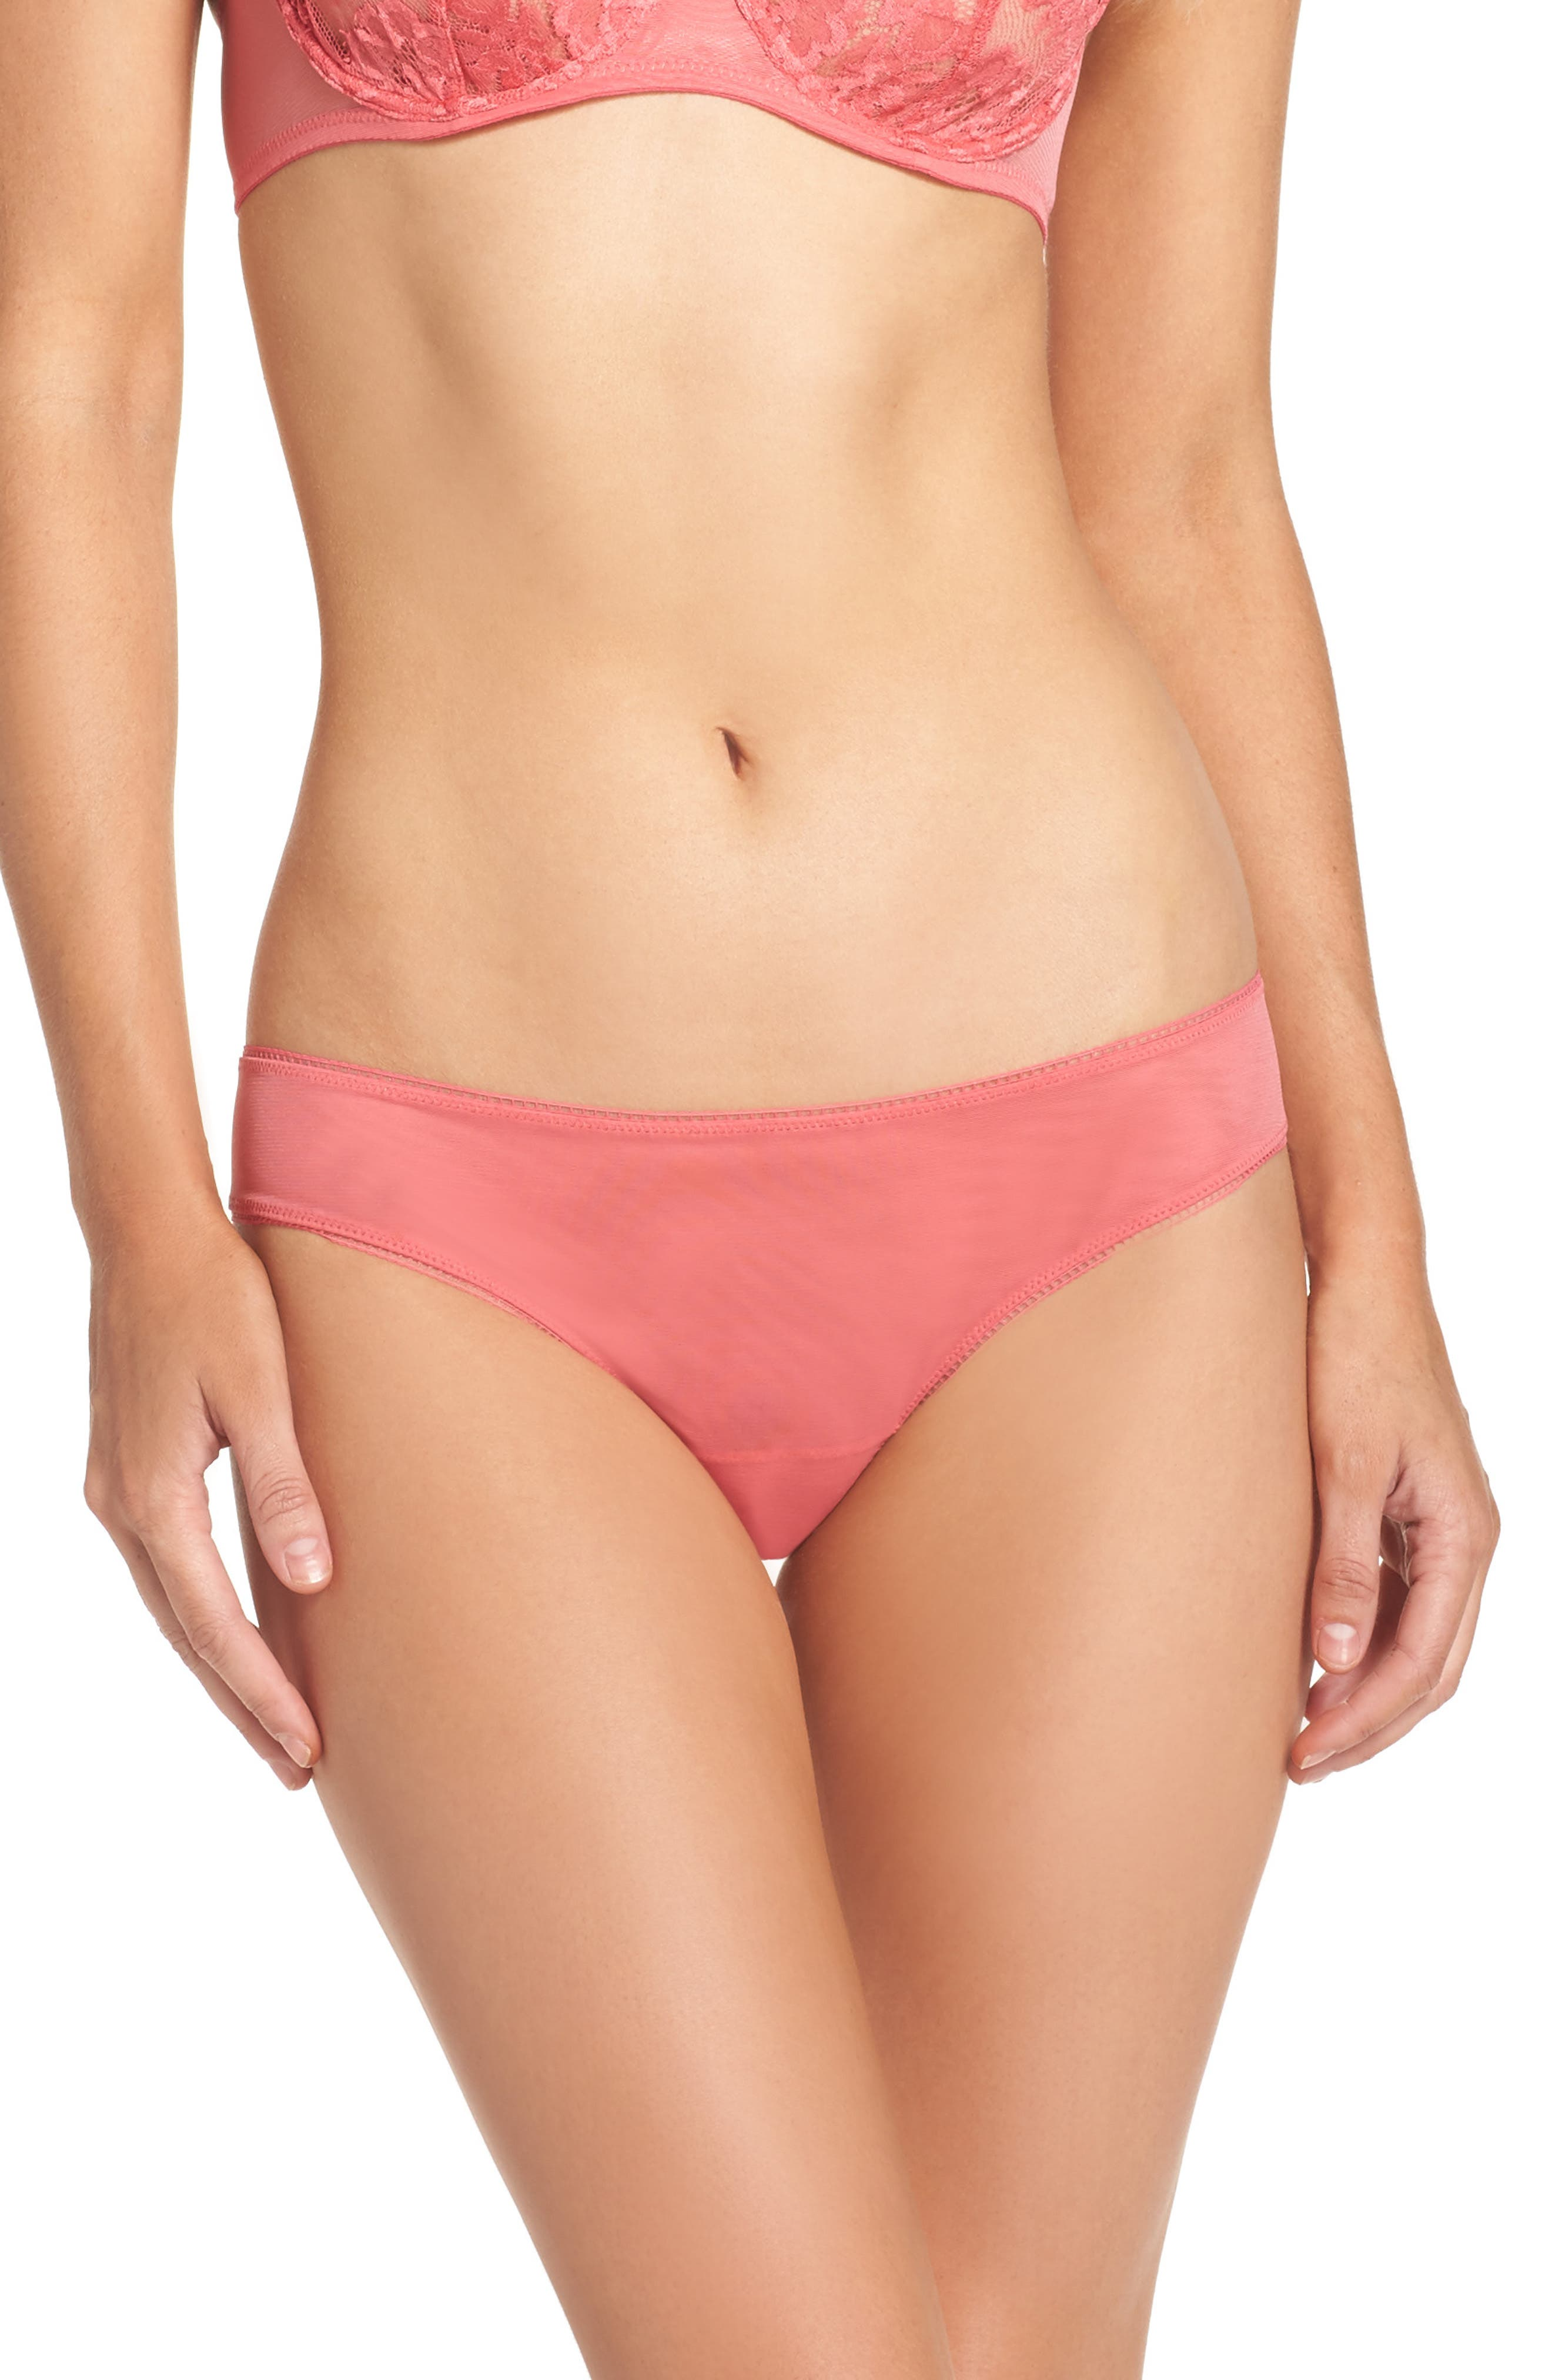 Primrose Field Brazilian Panties,                         Main,                         color, 950